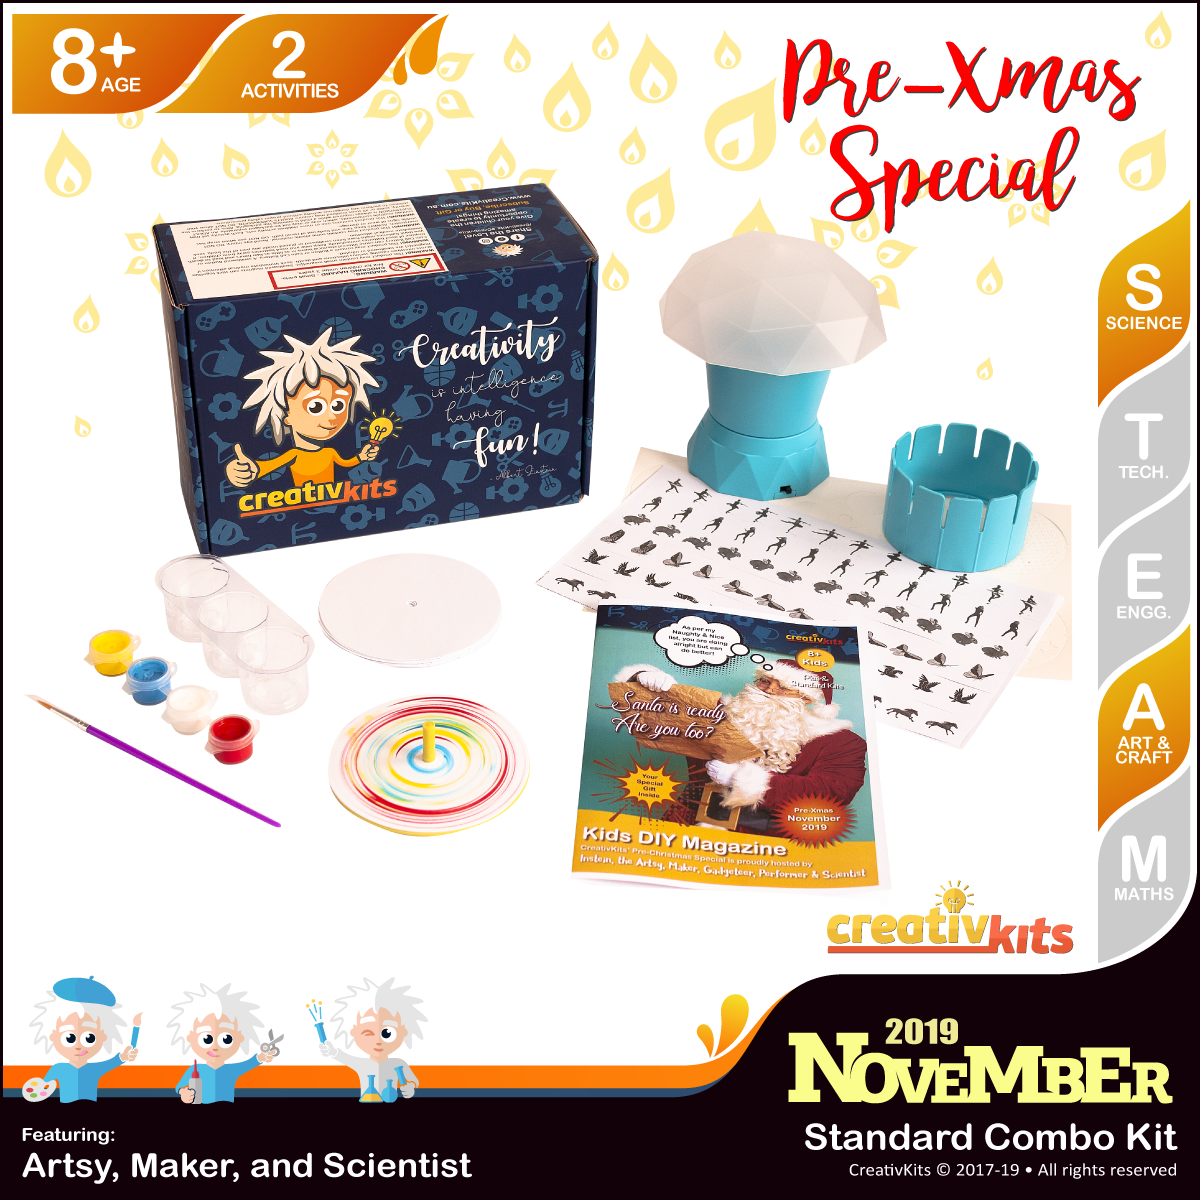 November Standard Combo Kit • Age 8 plus • Optical Mood Lamp and MYO Spin Art